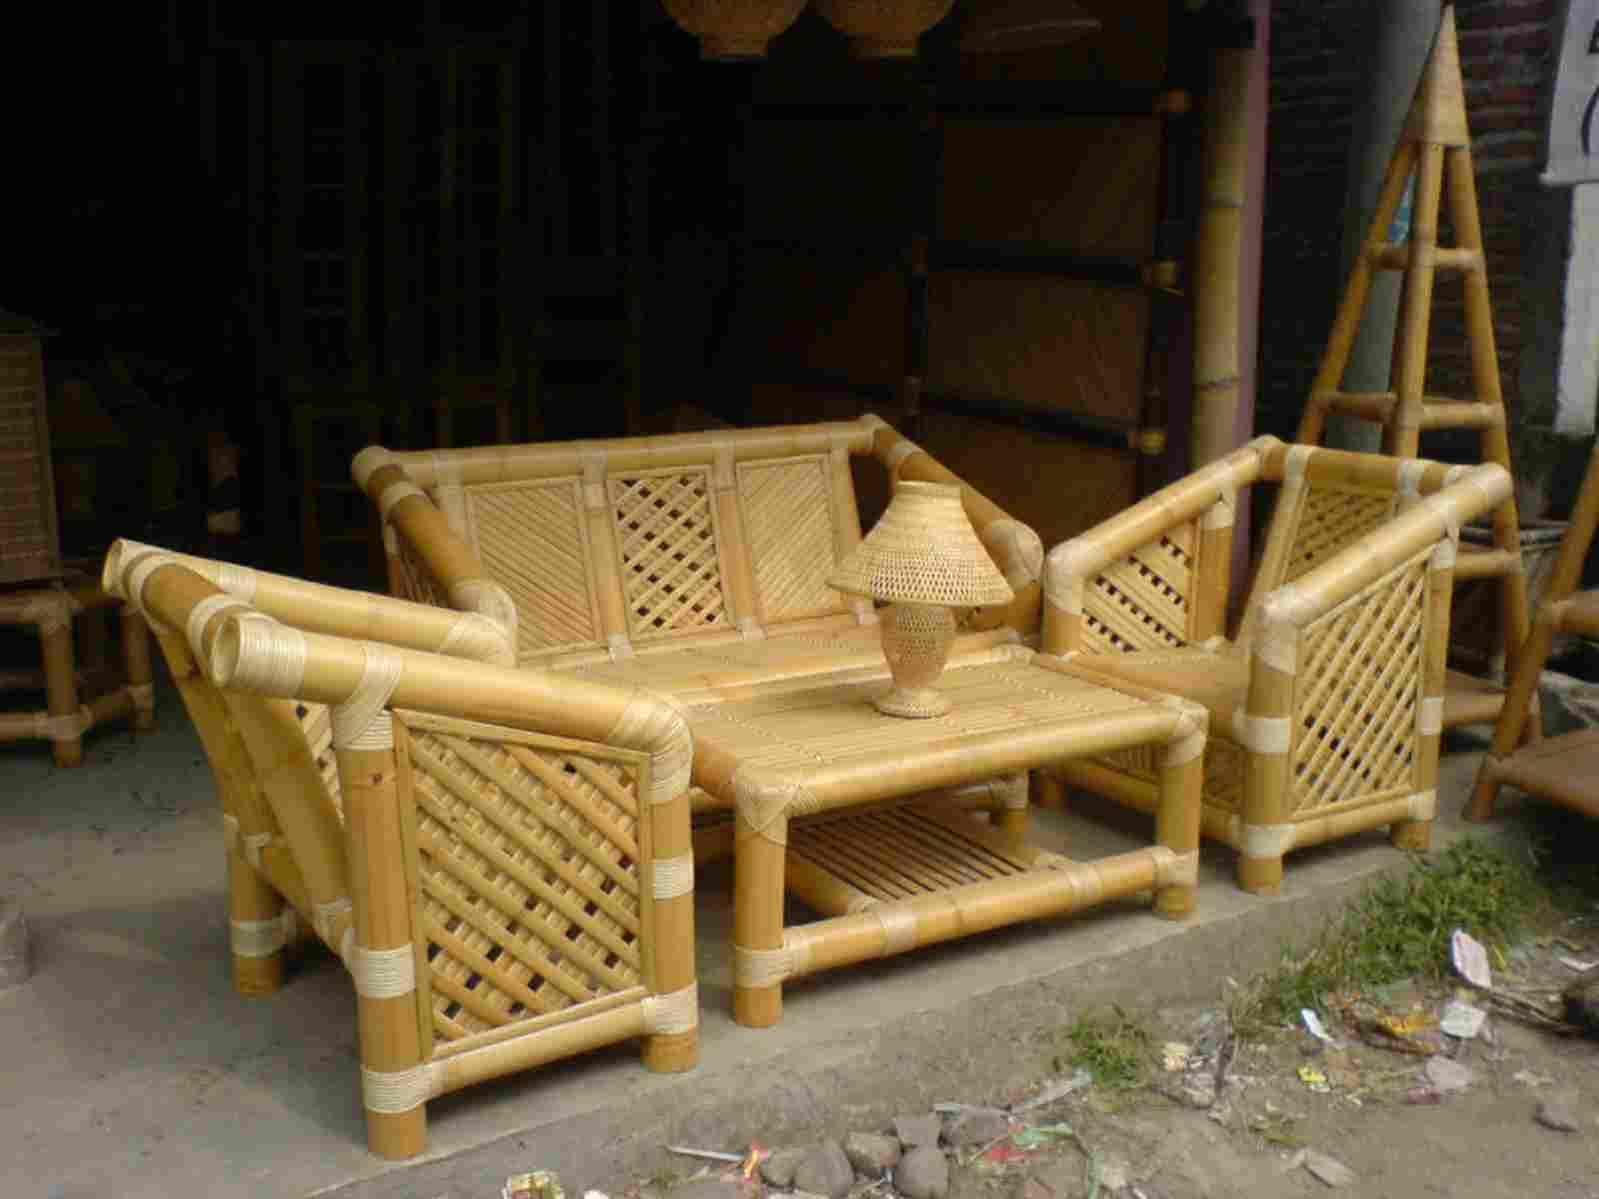 cane sofa cost in hyderabad cars flip open bed bamboo sofas set online ping price